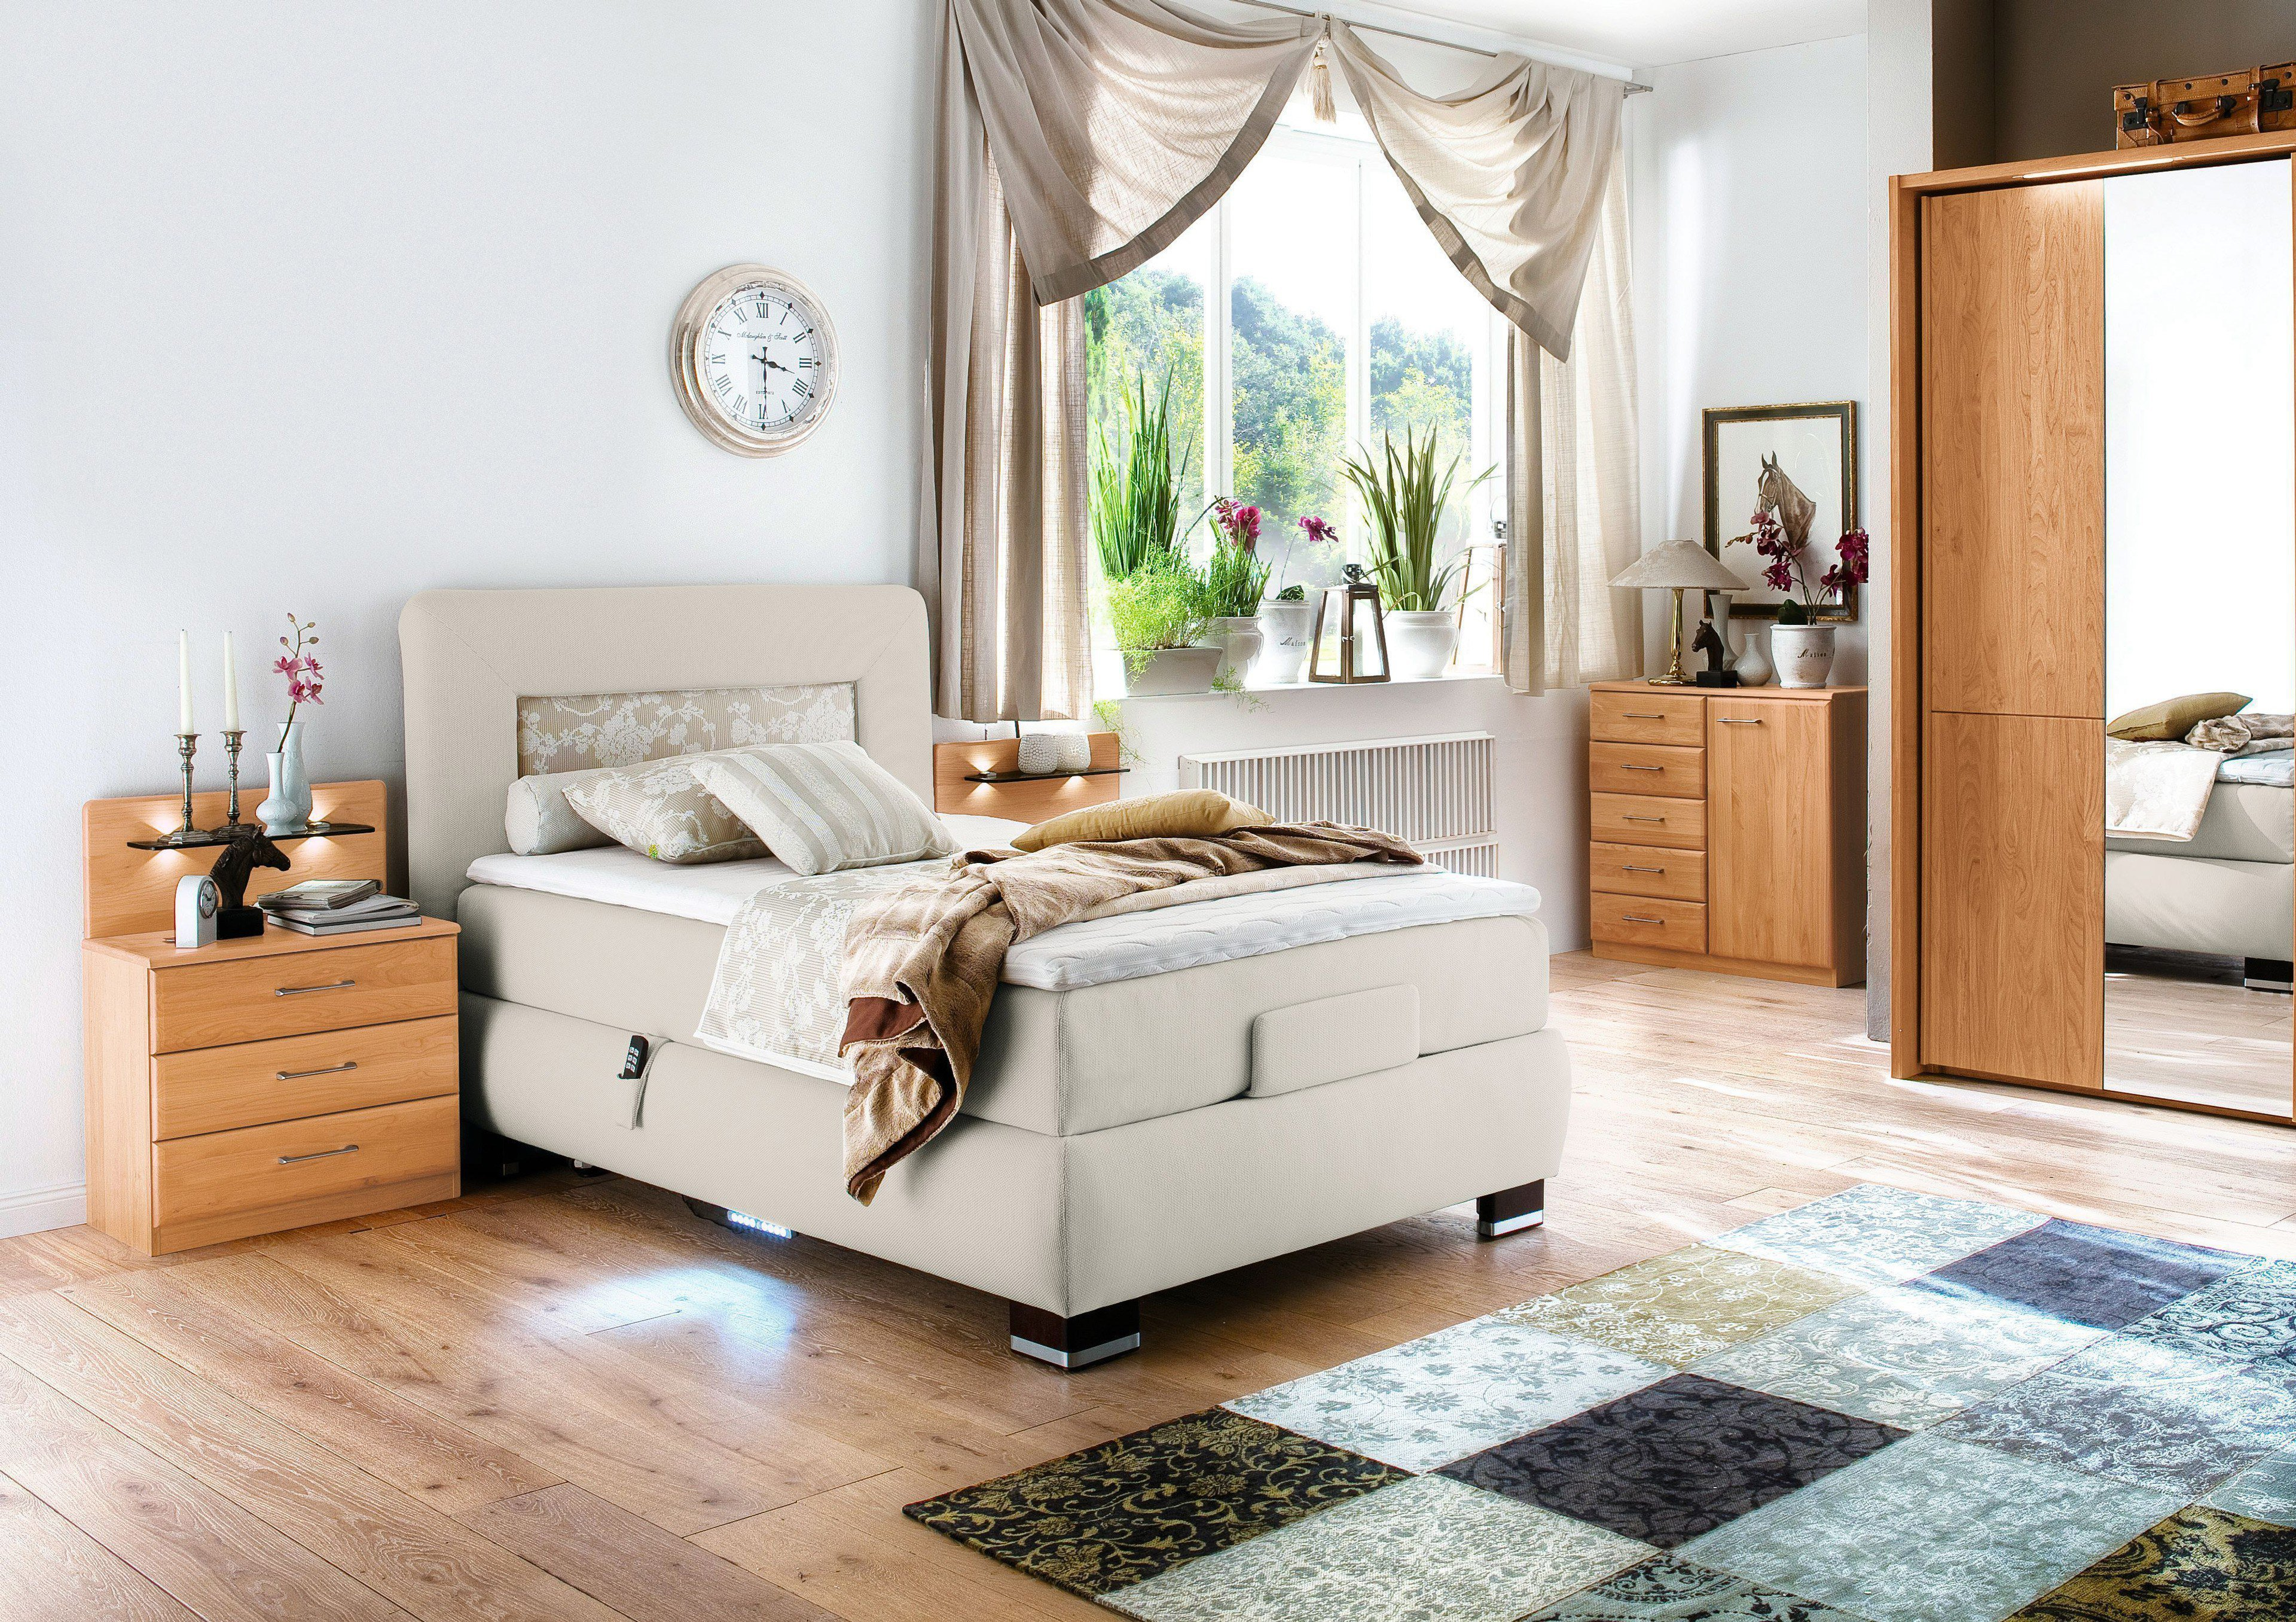 boxspringbett xl motor prestige von oschmann in beige m bel letz ihr online shop. Black Bedroom Furniture Sets. Home Design Ideas